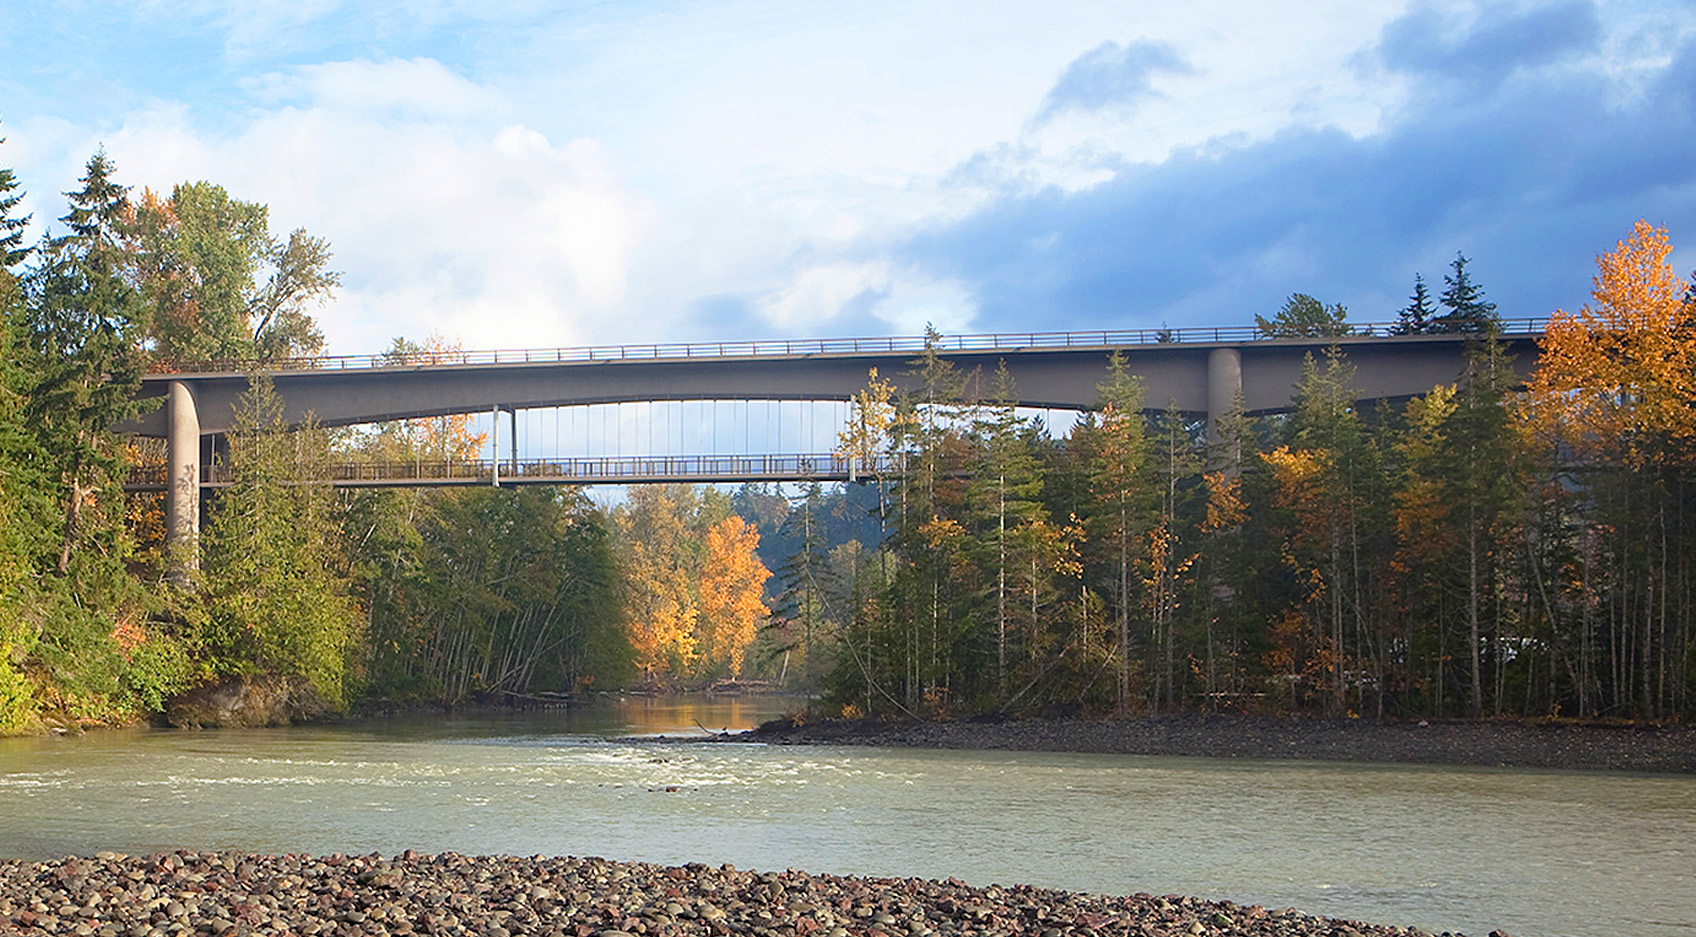 ELWHA RIVER BRIDGE